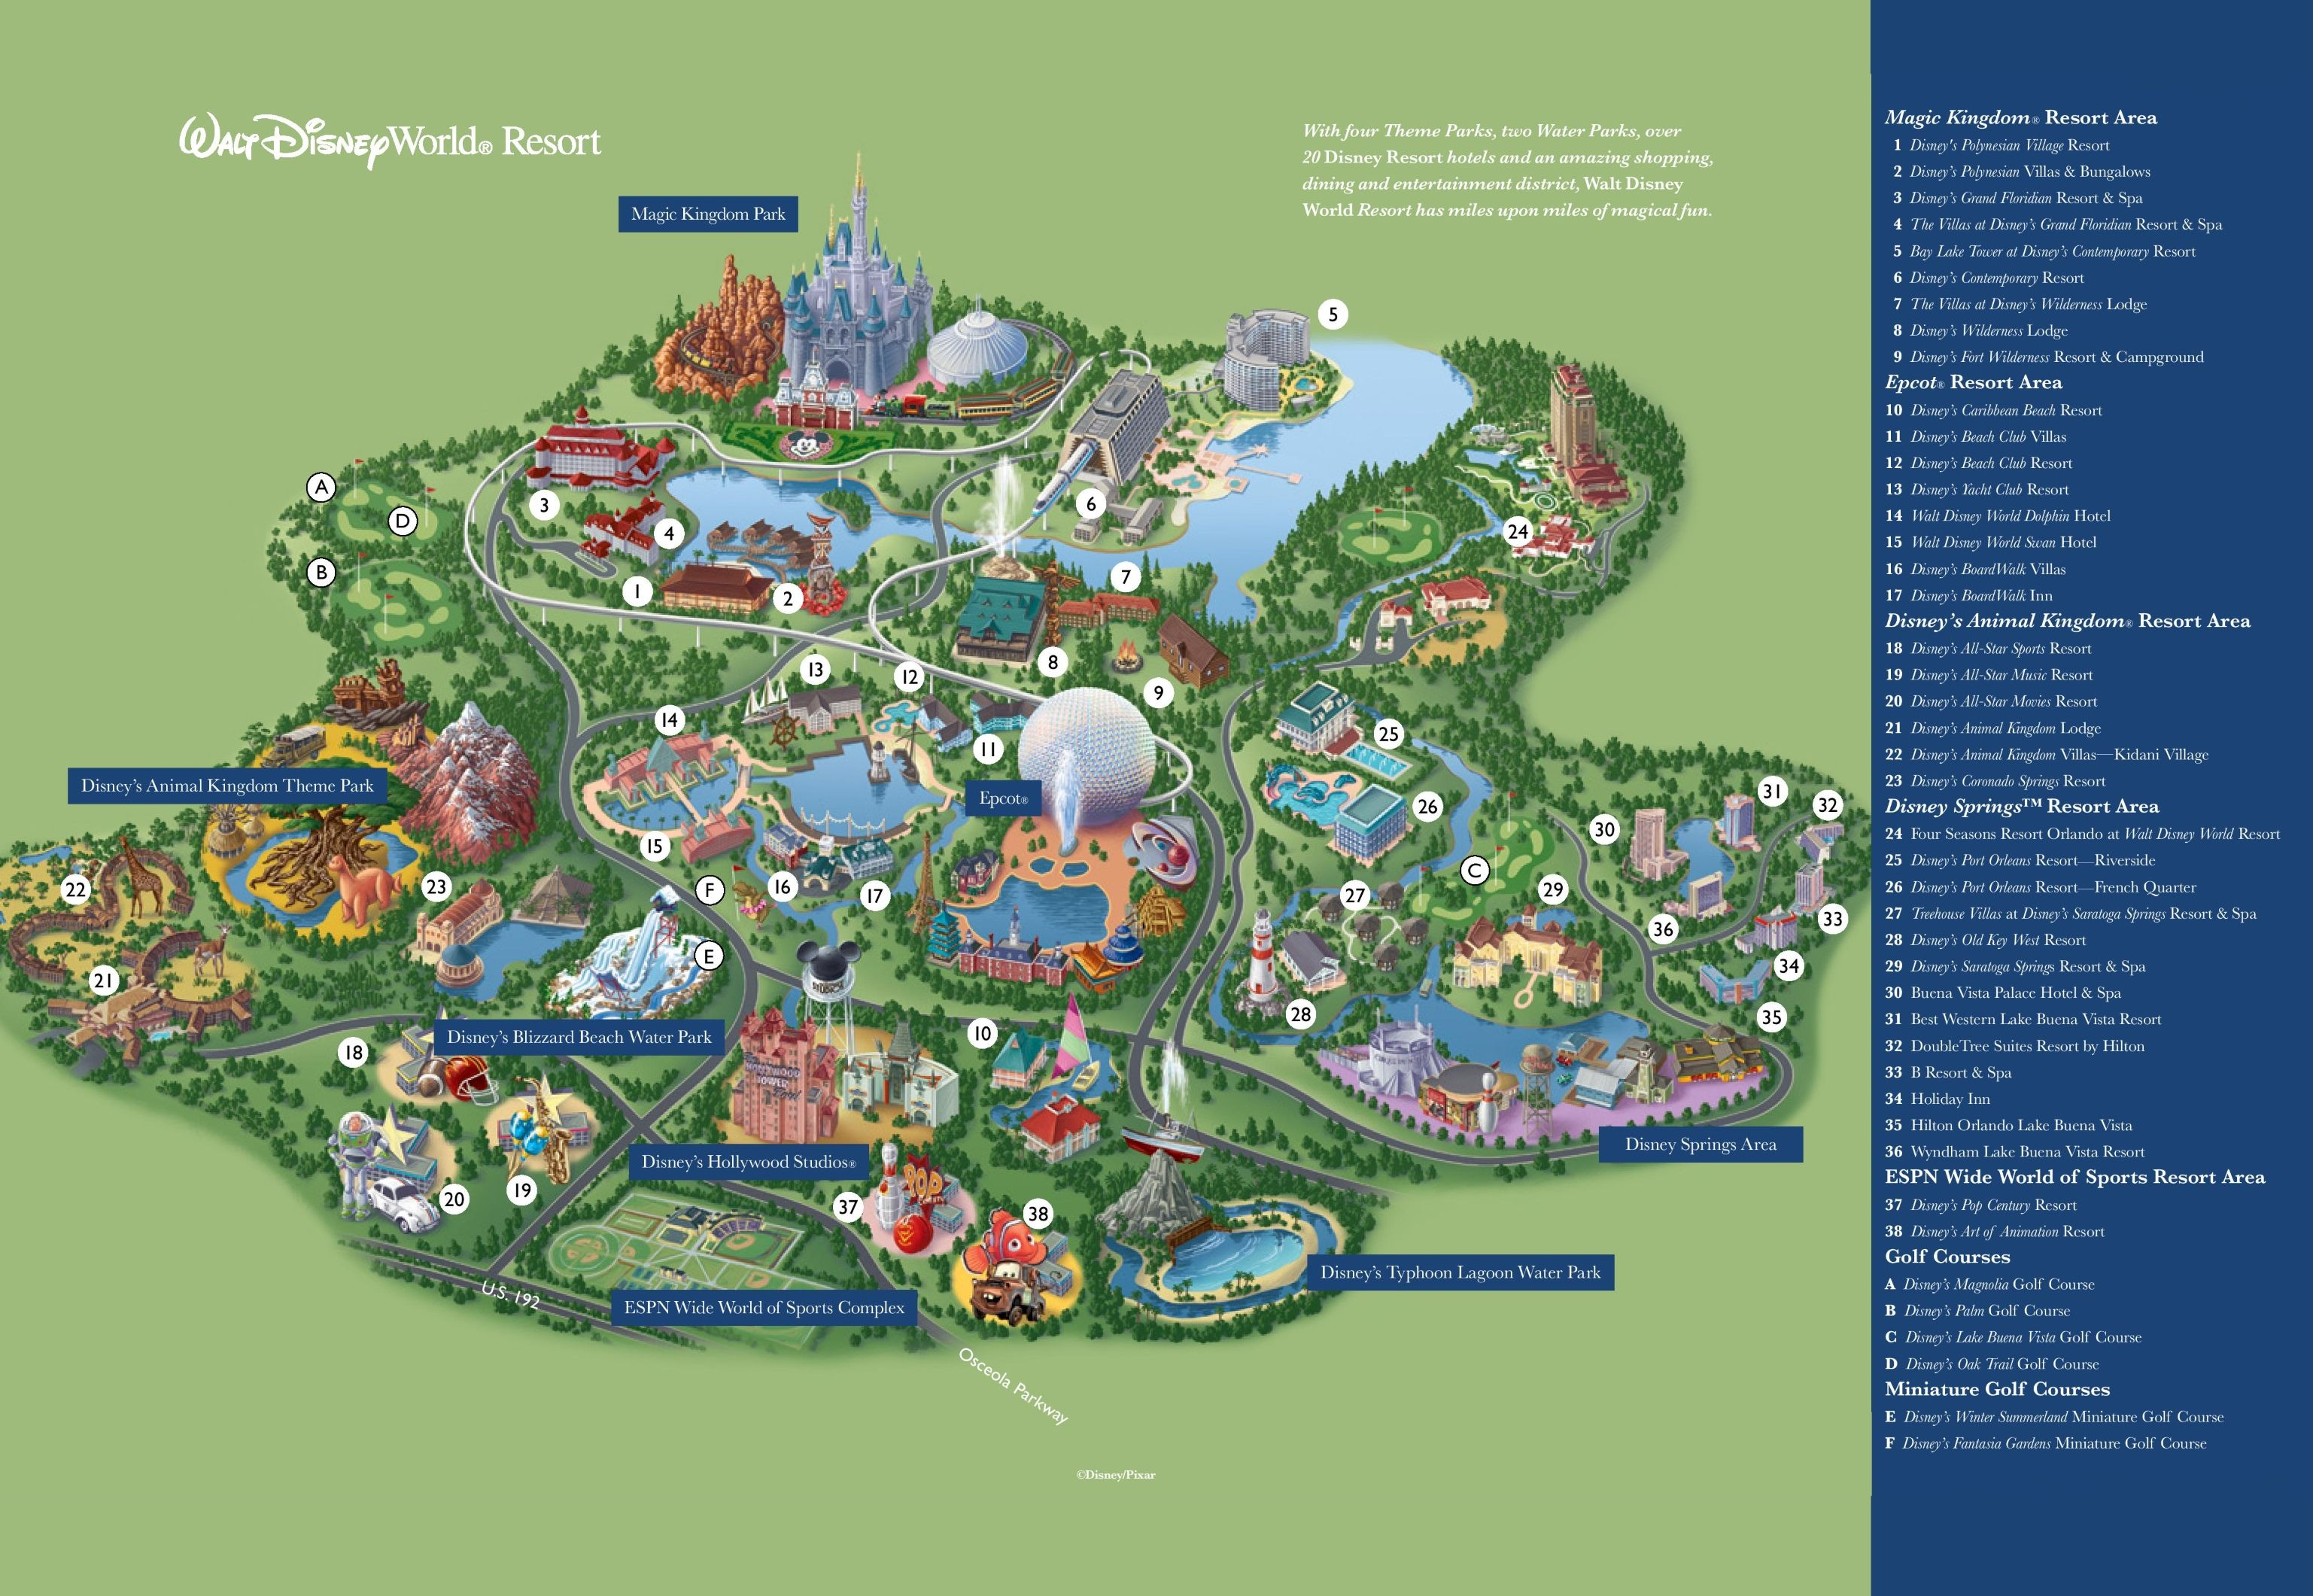 Orlando Walt Disney World Resort Map | Destination: Disney En 2019 - Walt Disney Florida Map